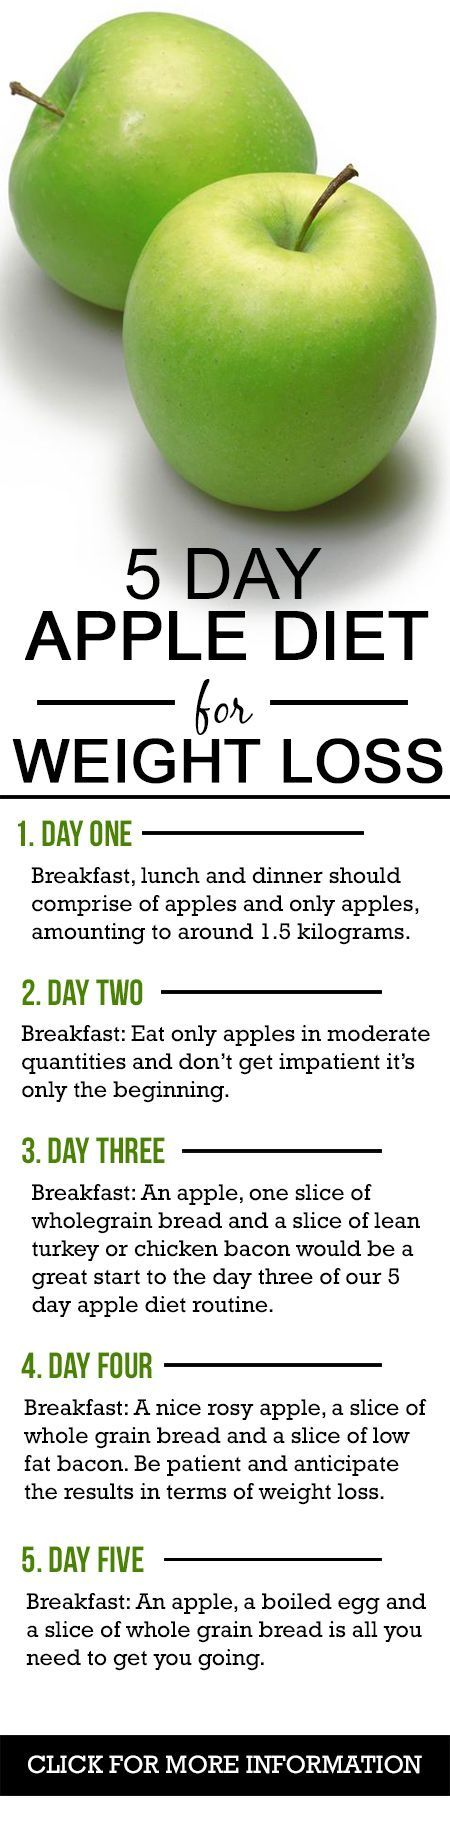 Want to know why and how the apple diet weight loss works? Read on.